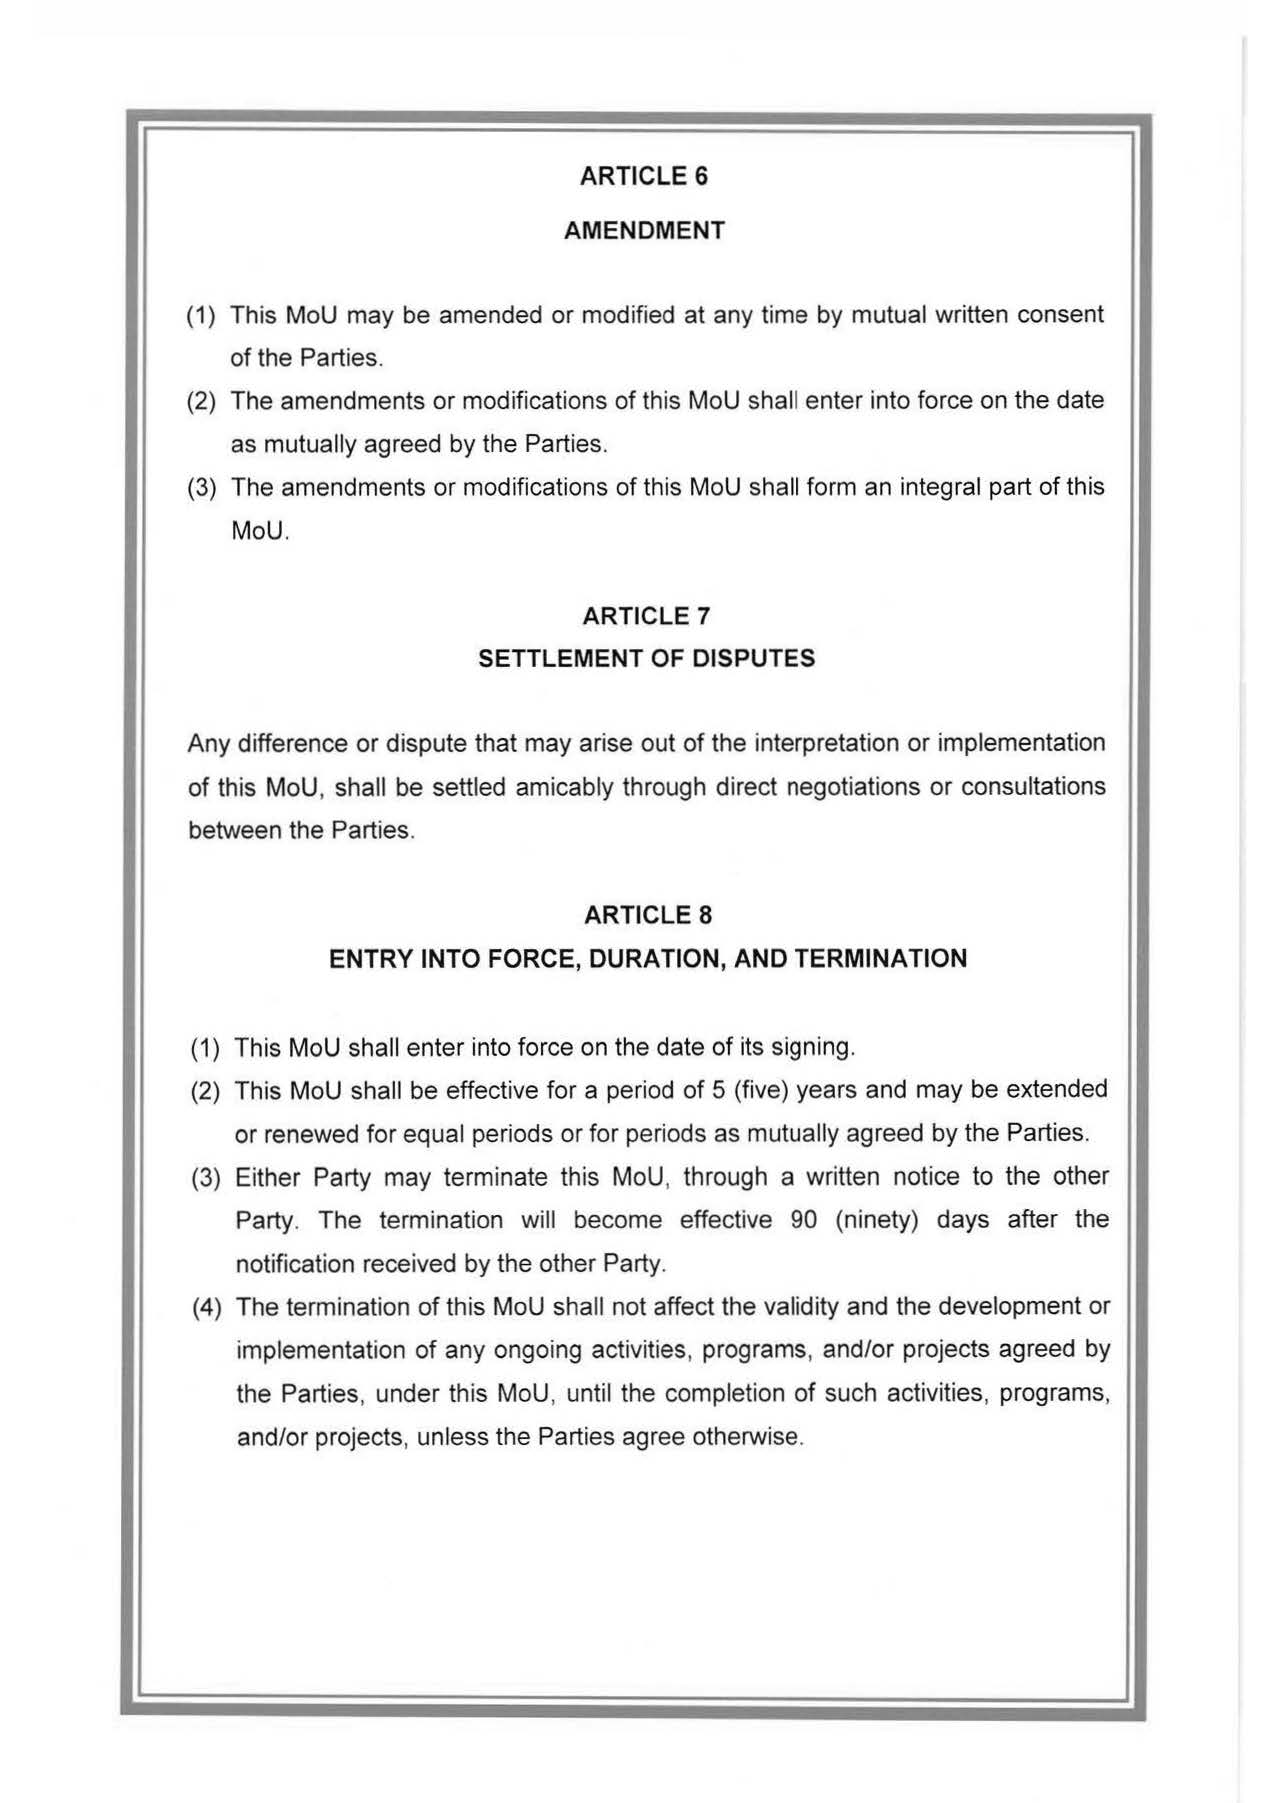 ARTICLE 6 AMENDMENT (1) This MoU may be amended or modified at any time by mutual written consent of the Parties.